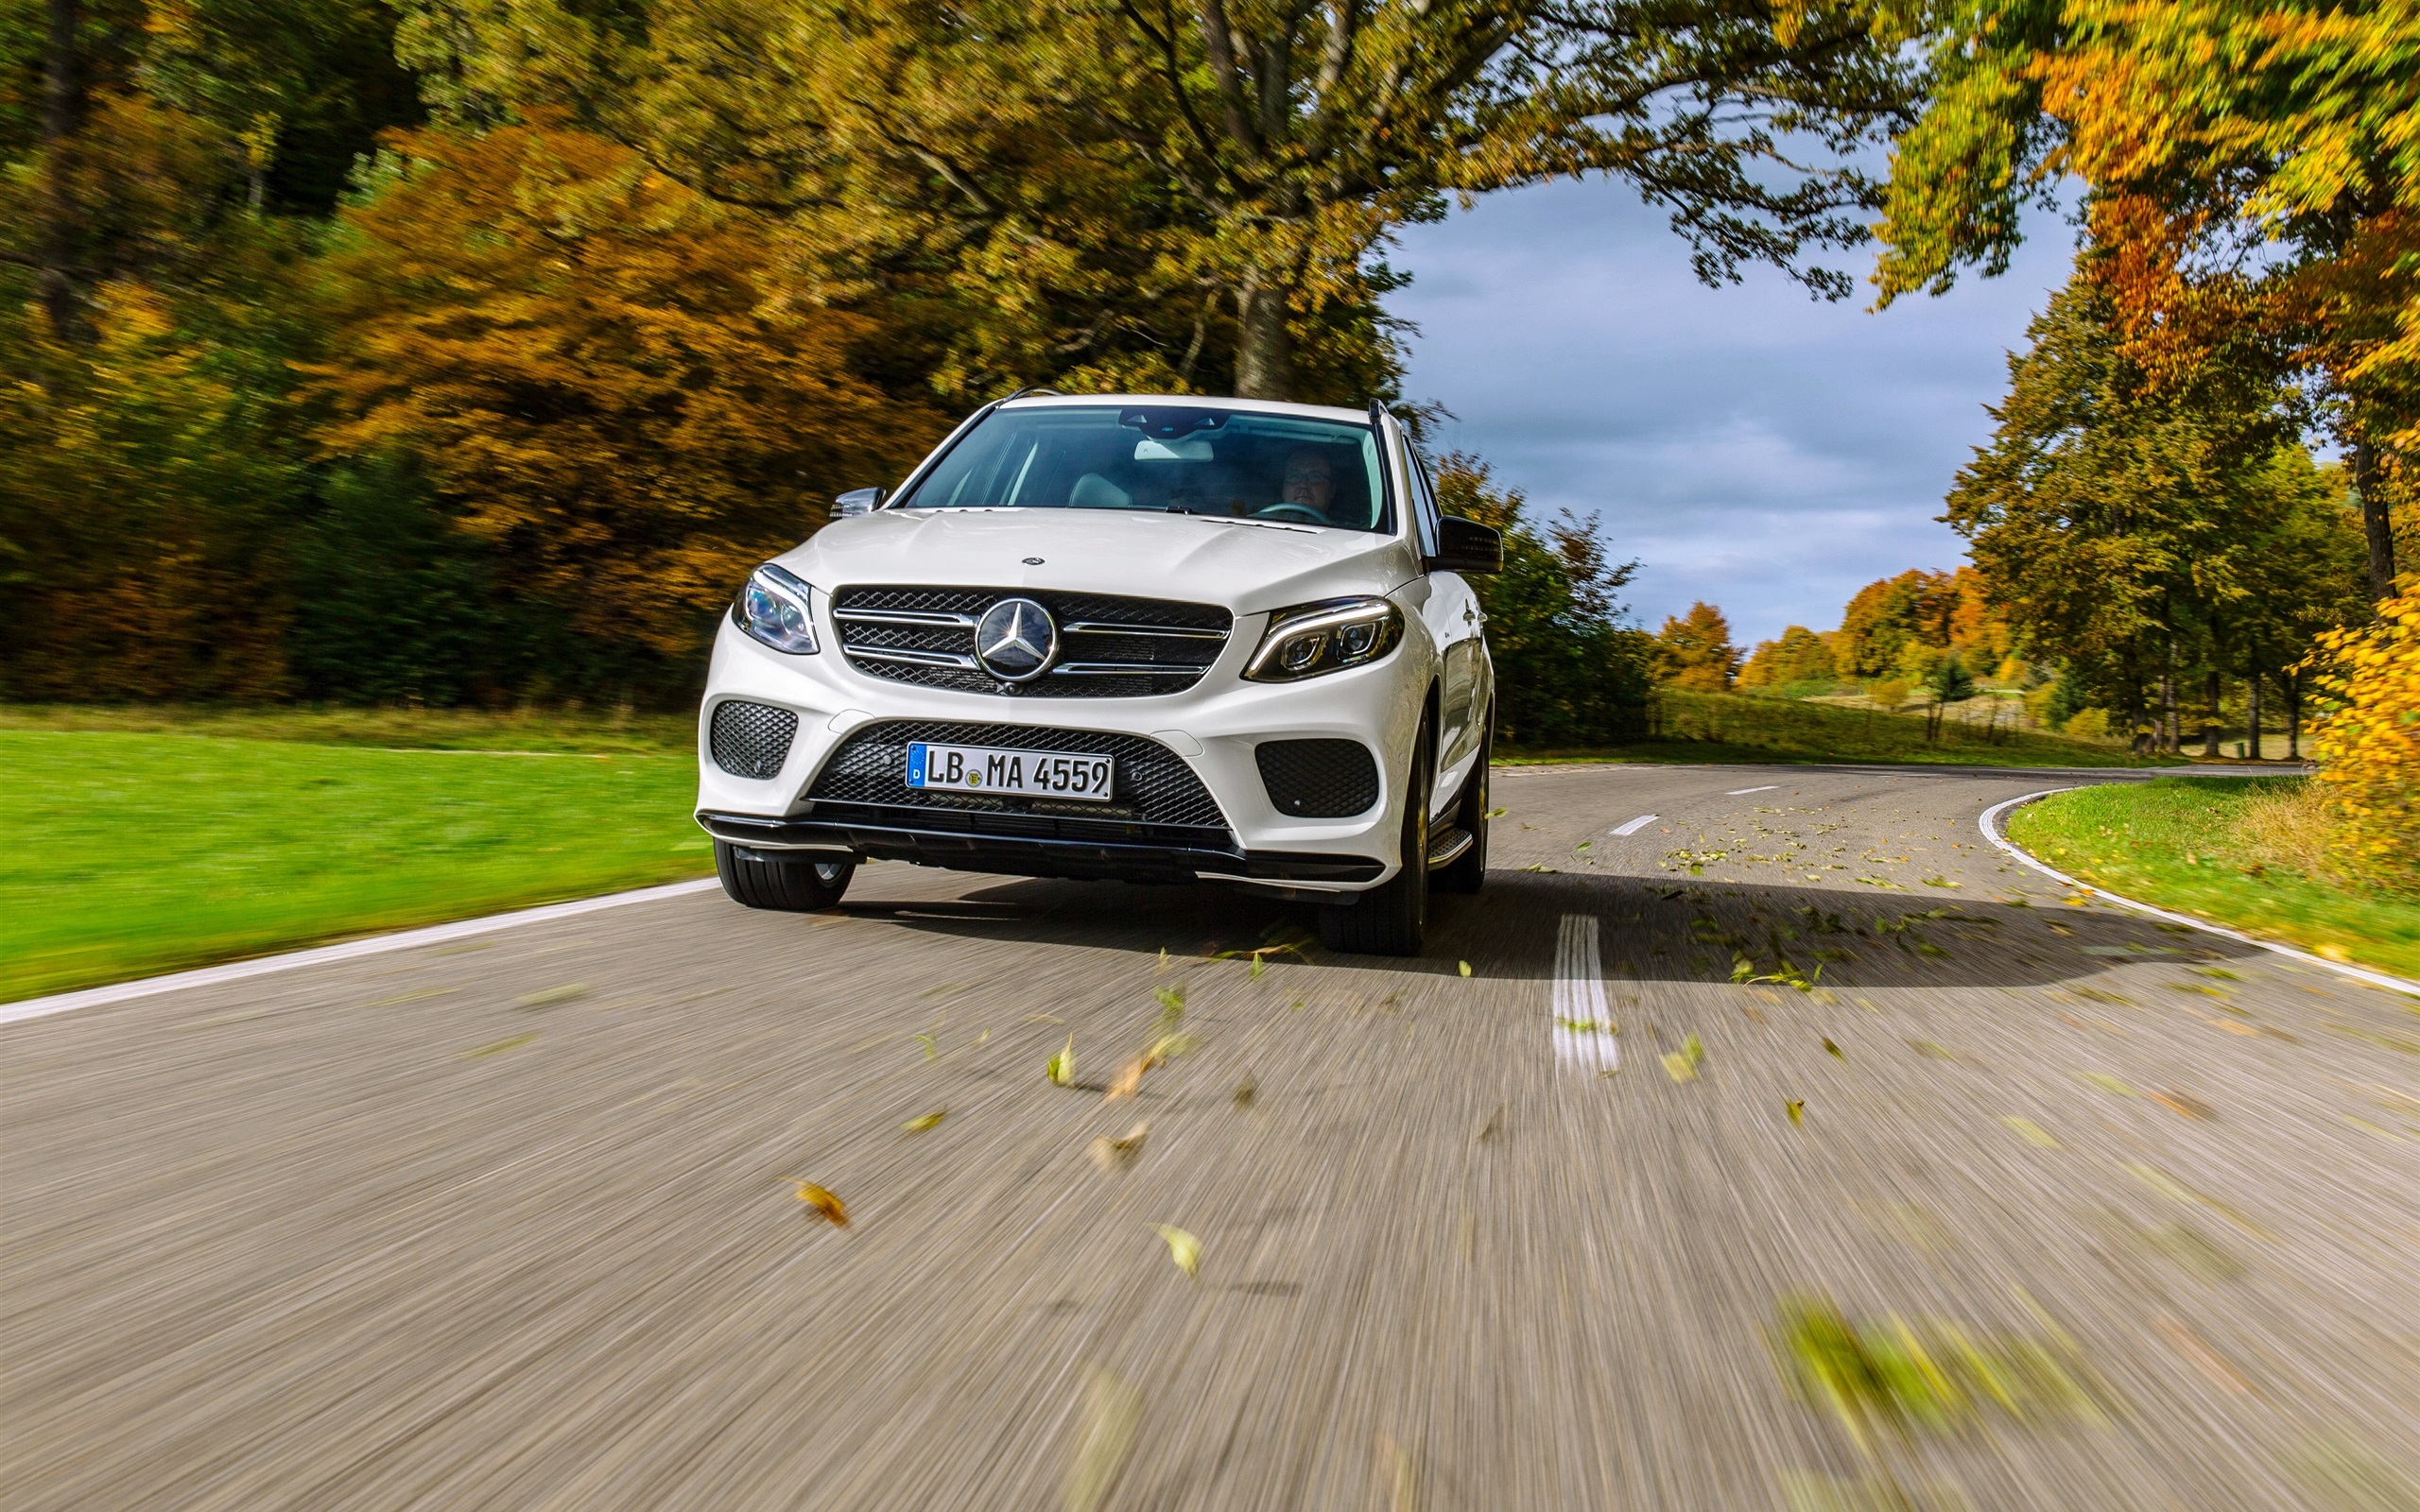 mercedes benz amg gle class w166 voiture blanche vue de face fonds d 39 cran 2560x1600 fonds d. Black Bedroom Furniture Sets. Home Design Ideas